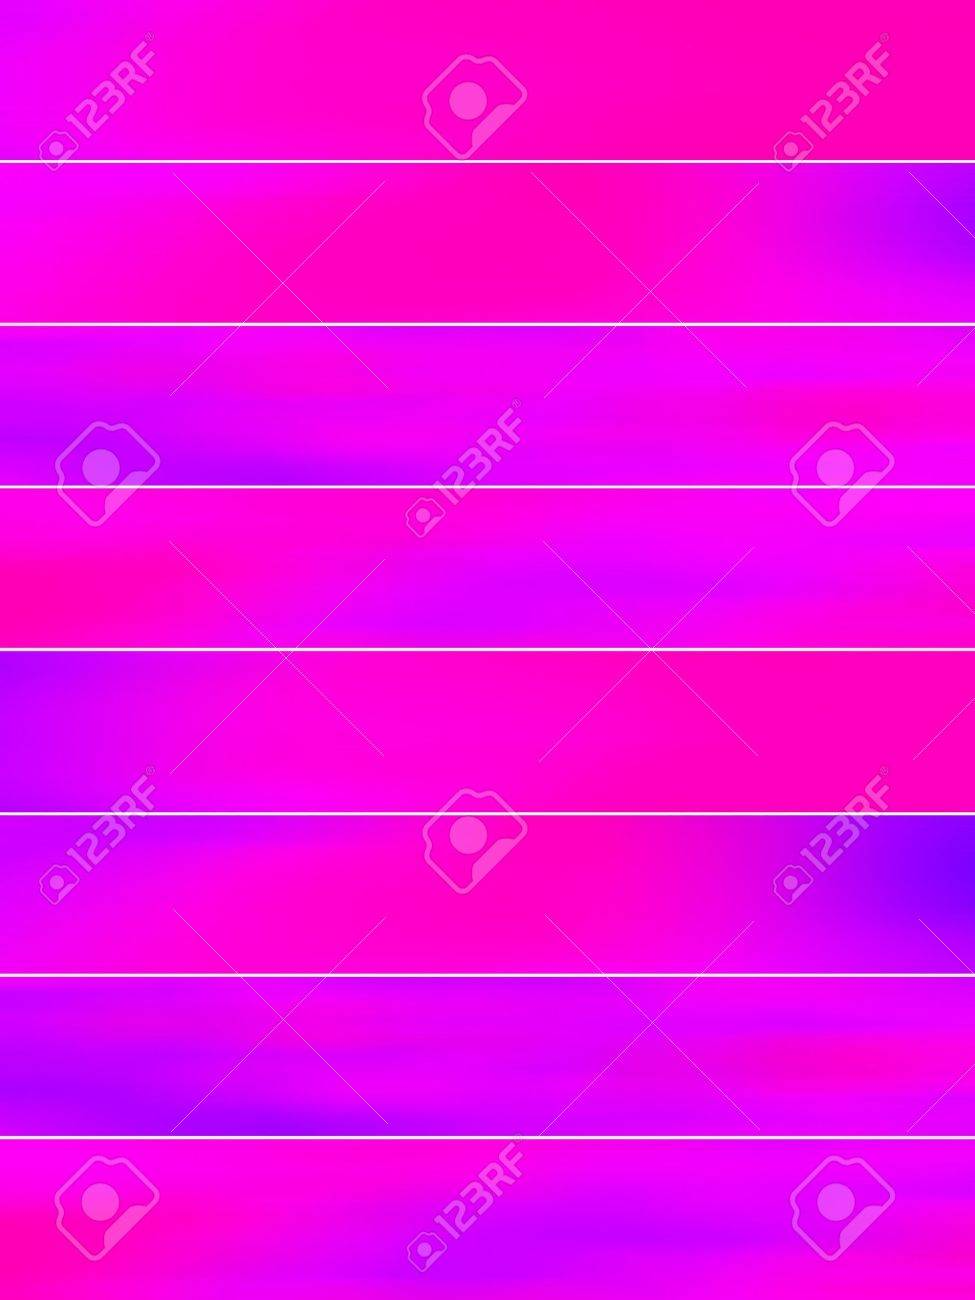 Fluorescent Pink Background Banners In A Vertical Background Stock